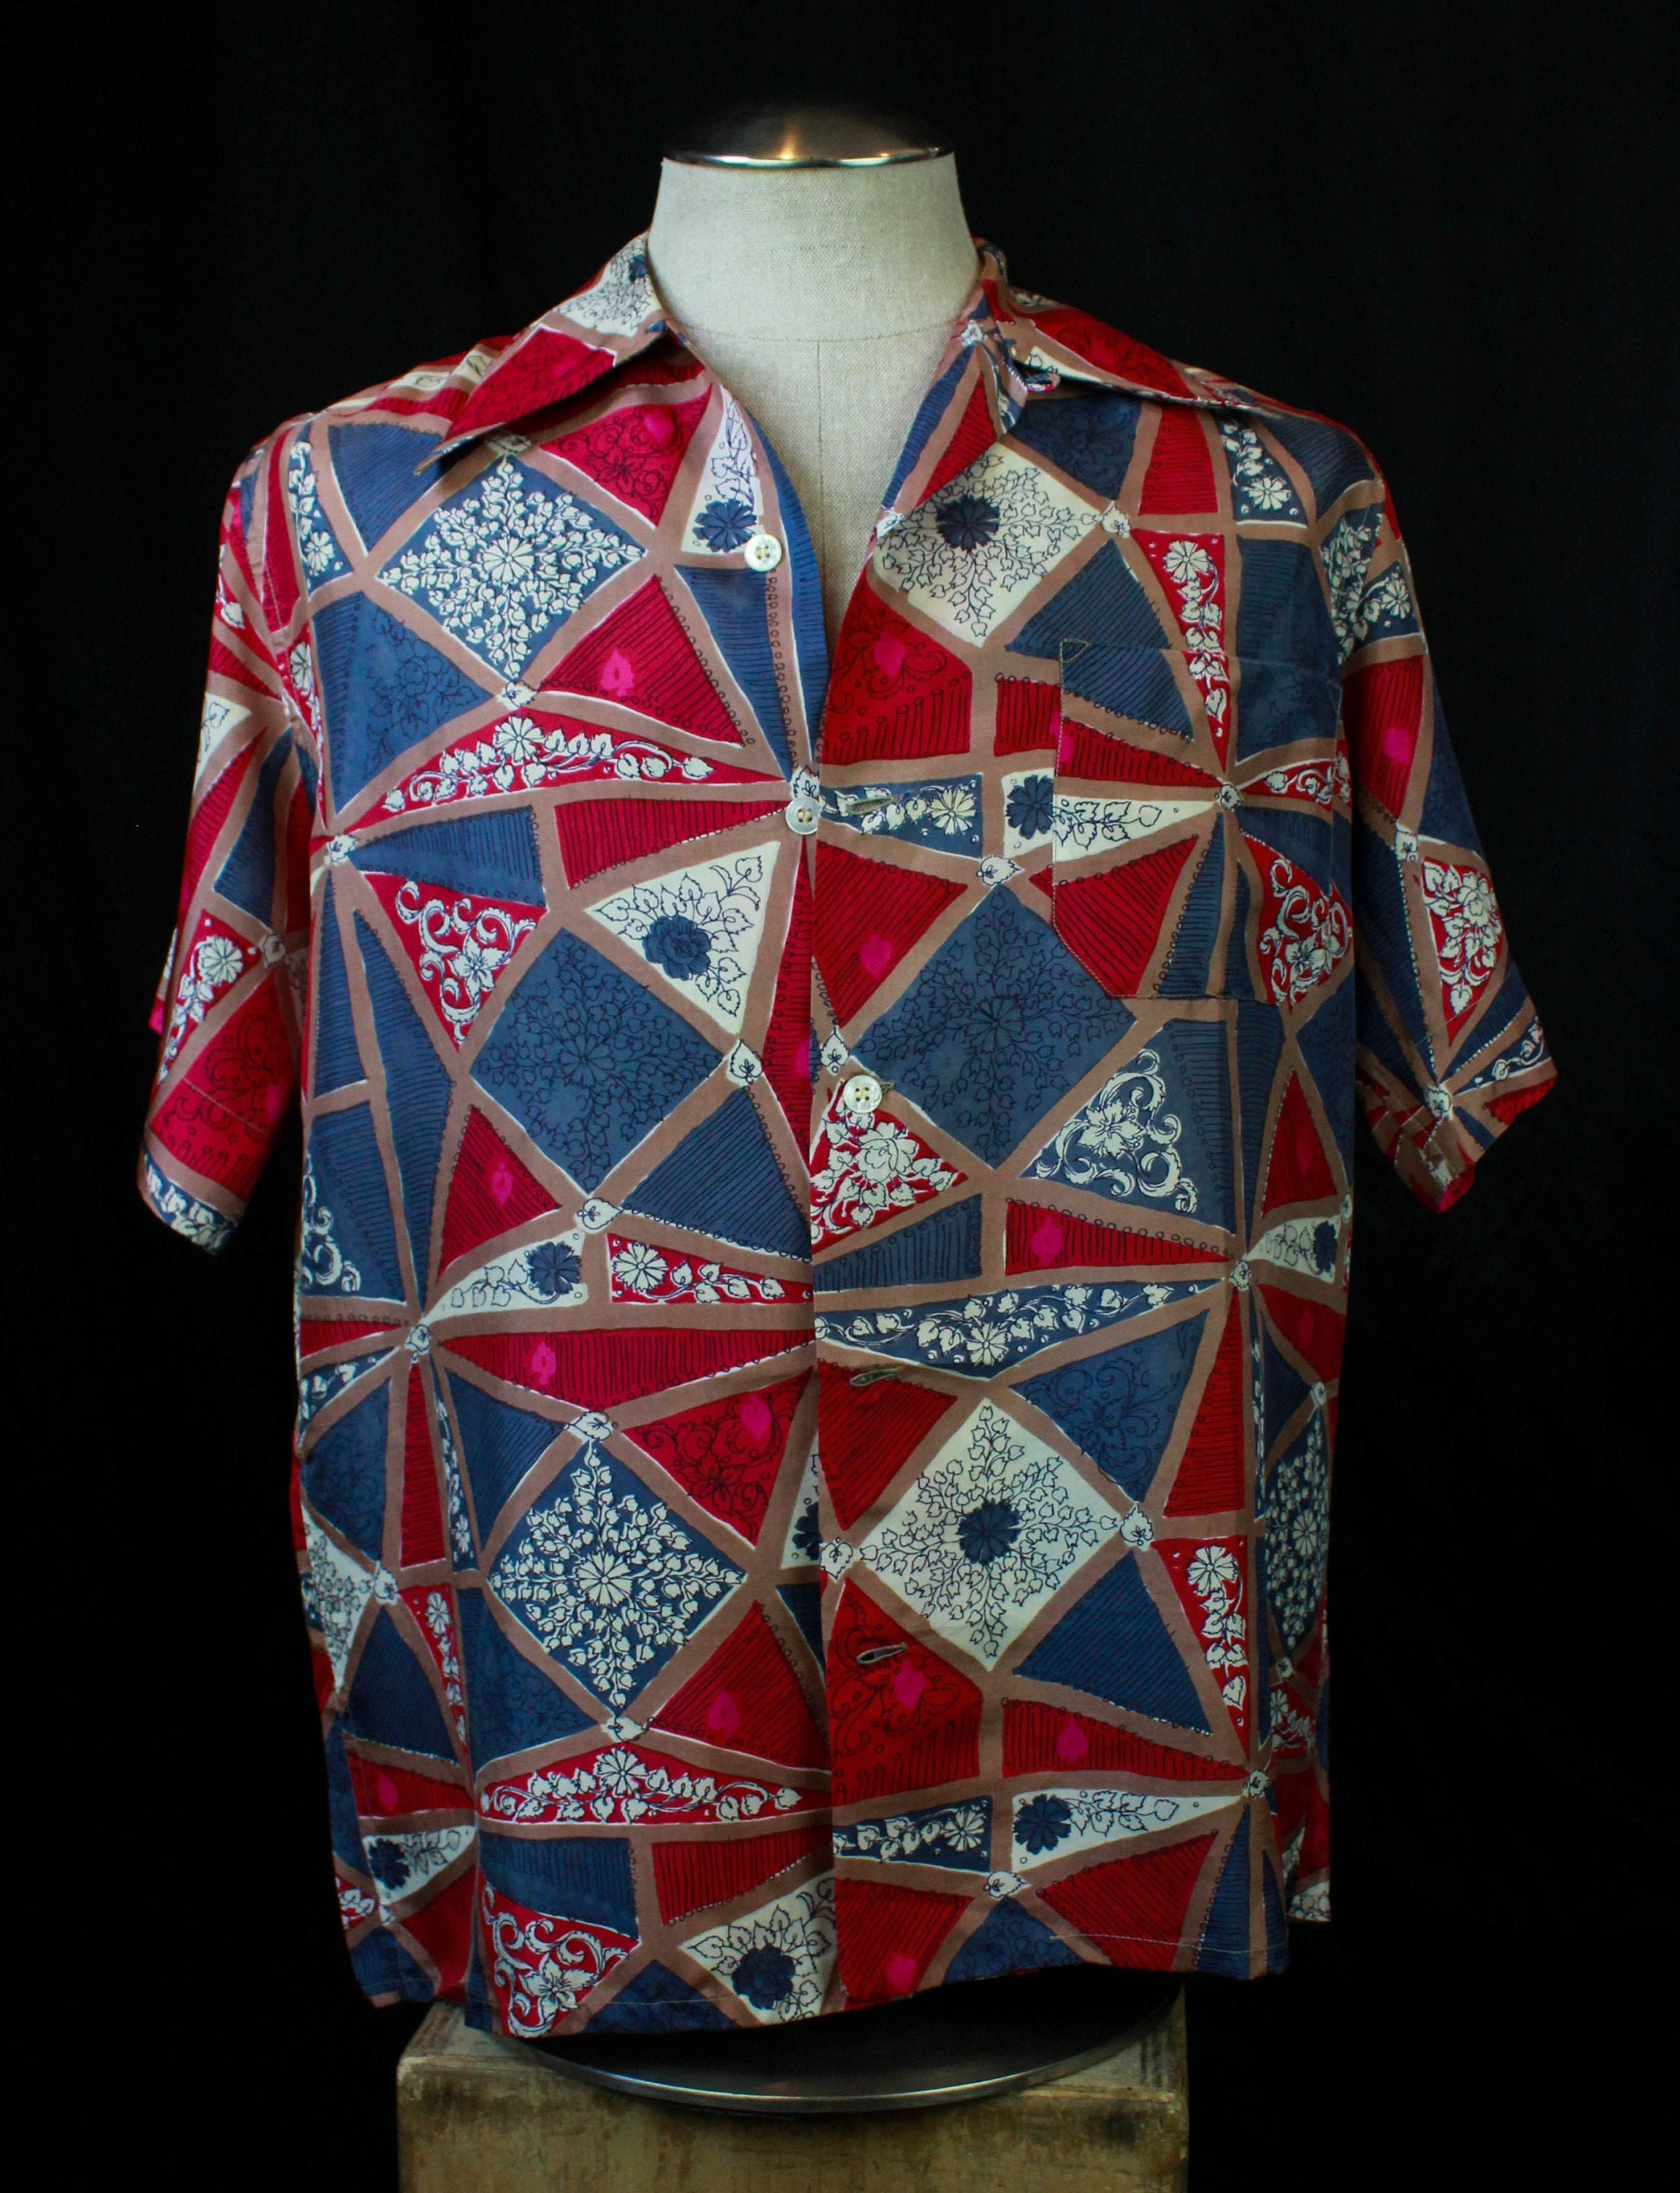 1940s Men's Shirts, Sweaters, Vests Mens Vintage 40s Bullocks Aloha Hawaiian Shirt By Thomas Medium $0.00 AT vintagedancer.com